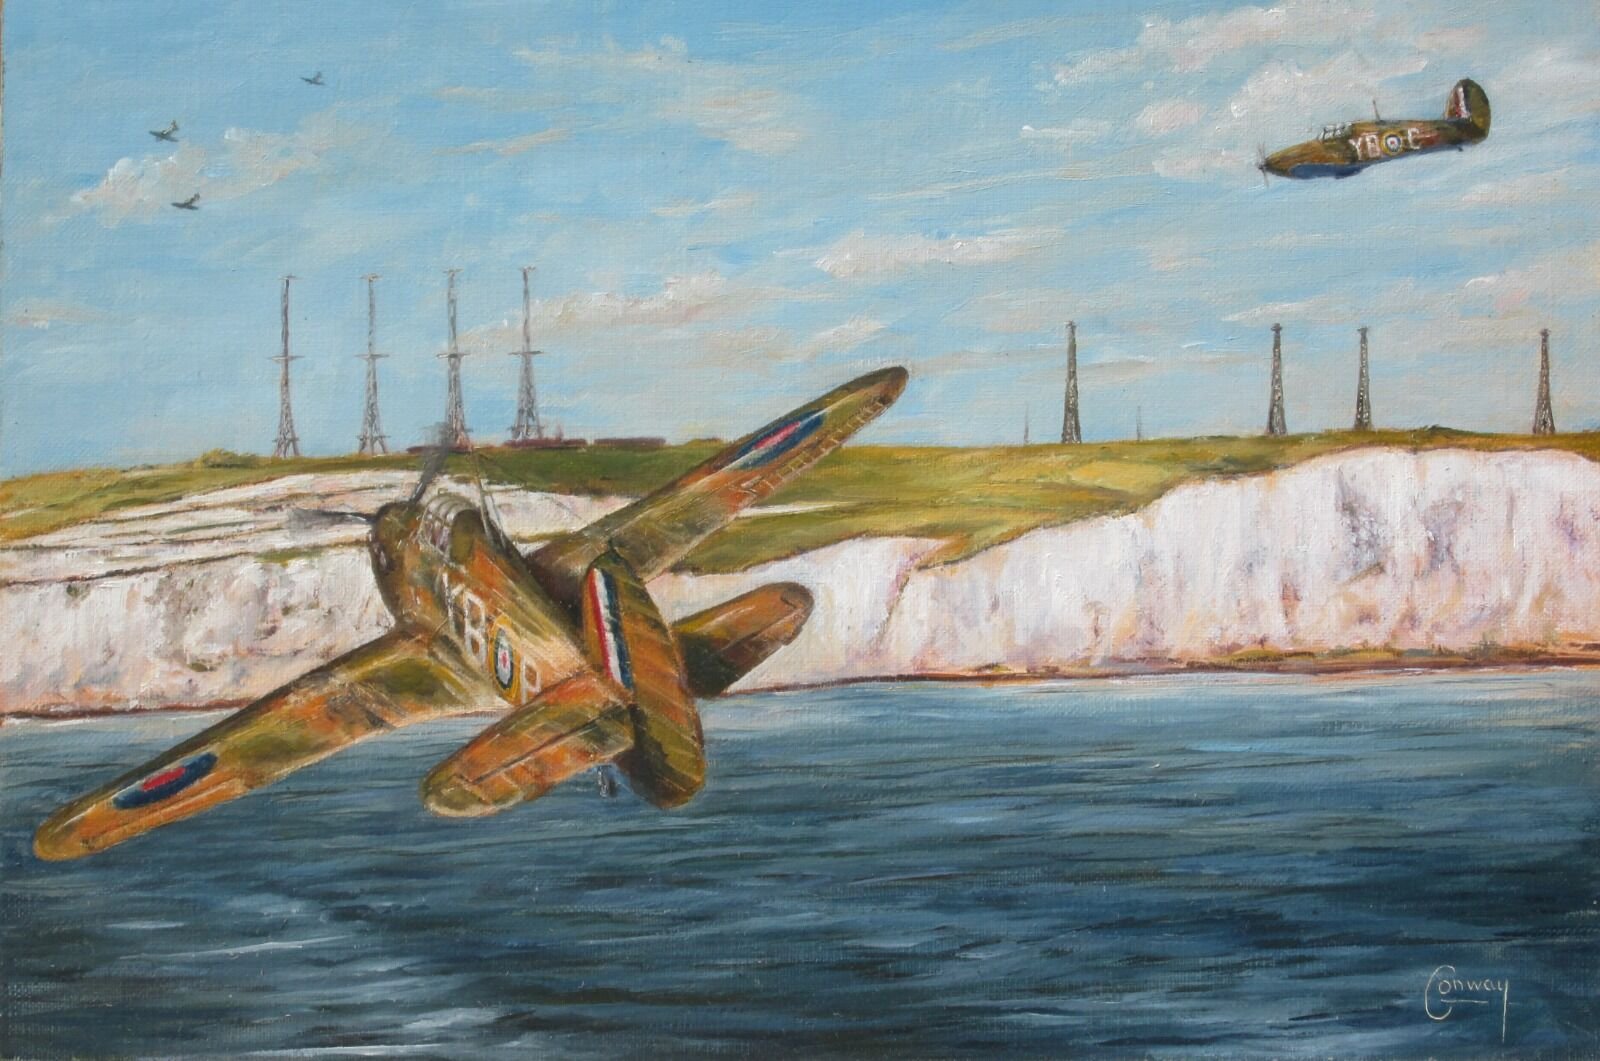 'Back Among Friends' - Hurricane of Sq/L. Cedric Watcyn Williams, No. 17 Squadron at Swingate, Dover